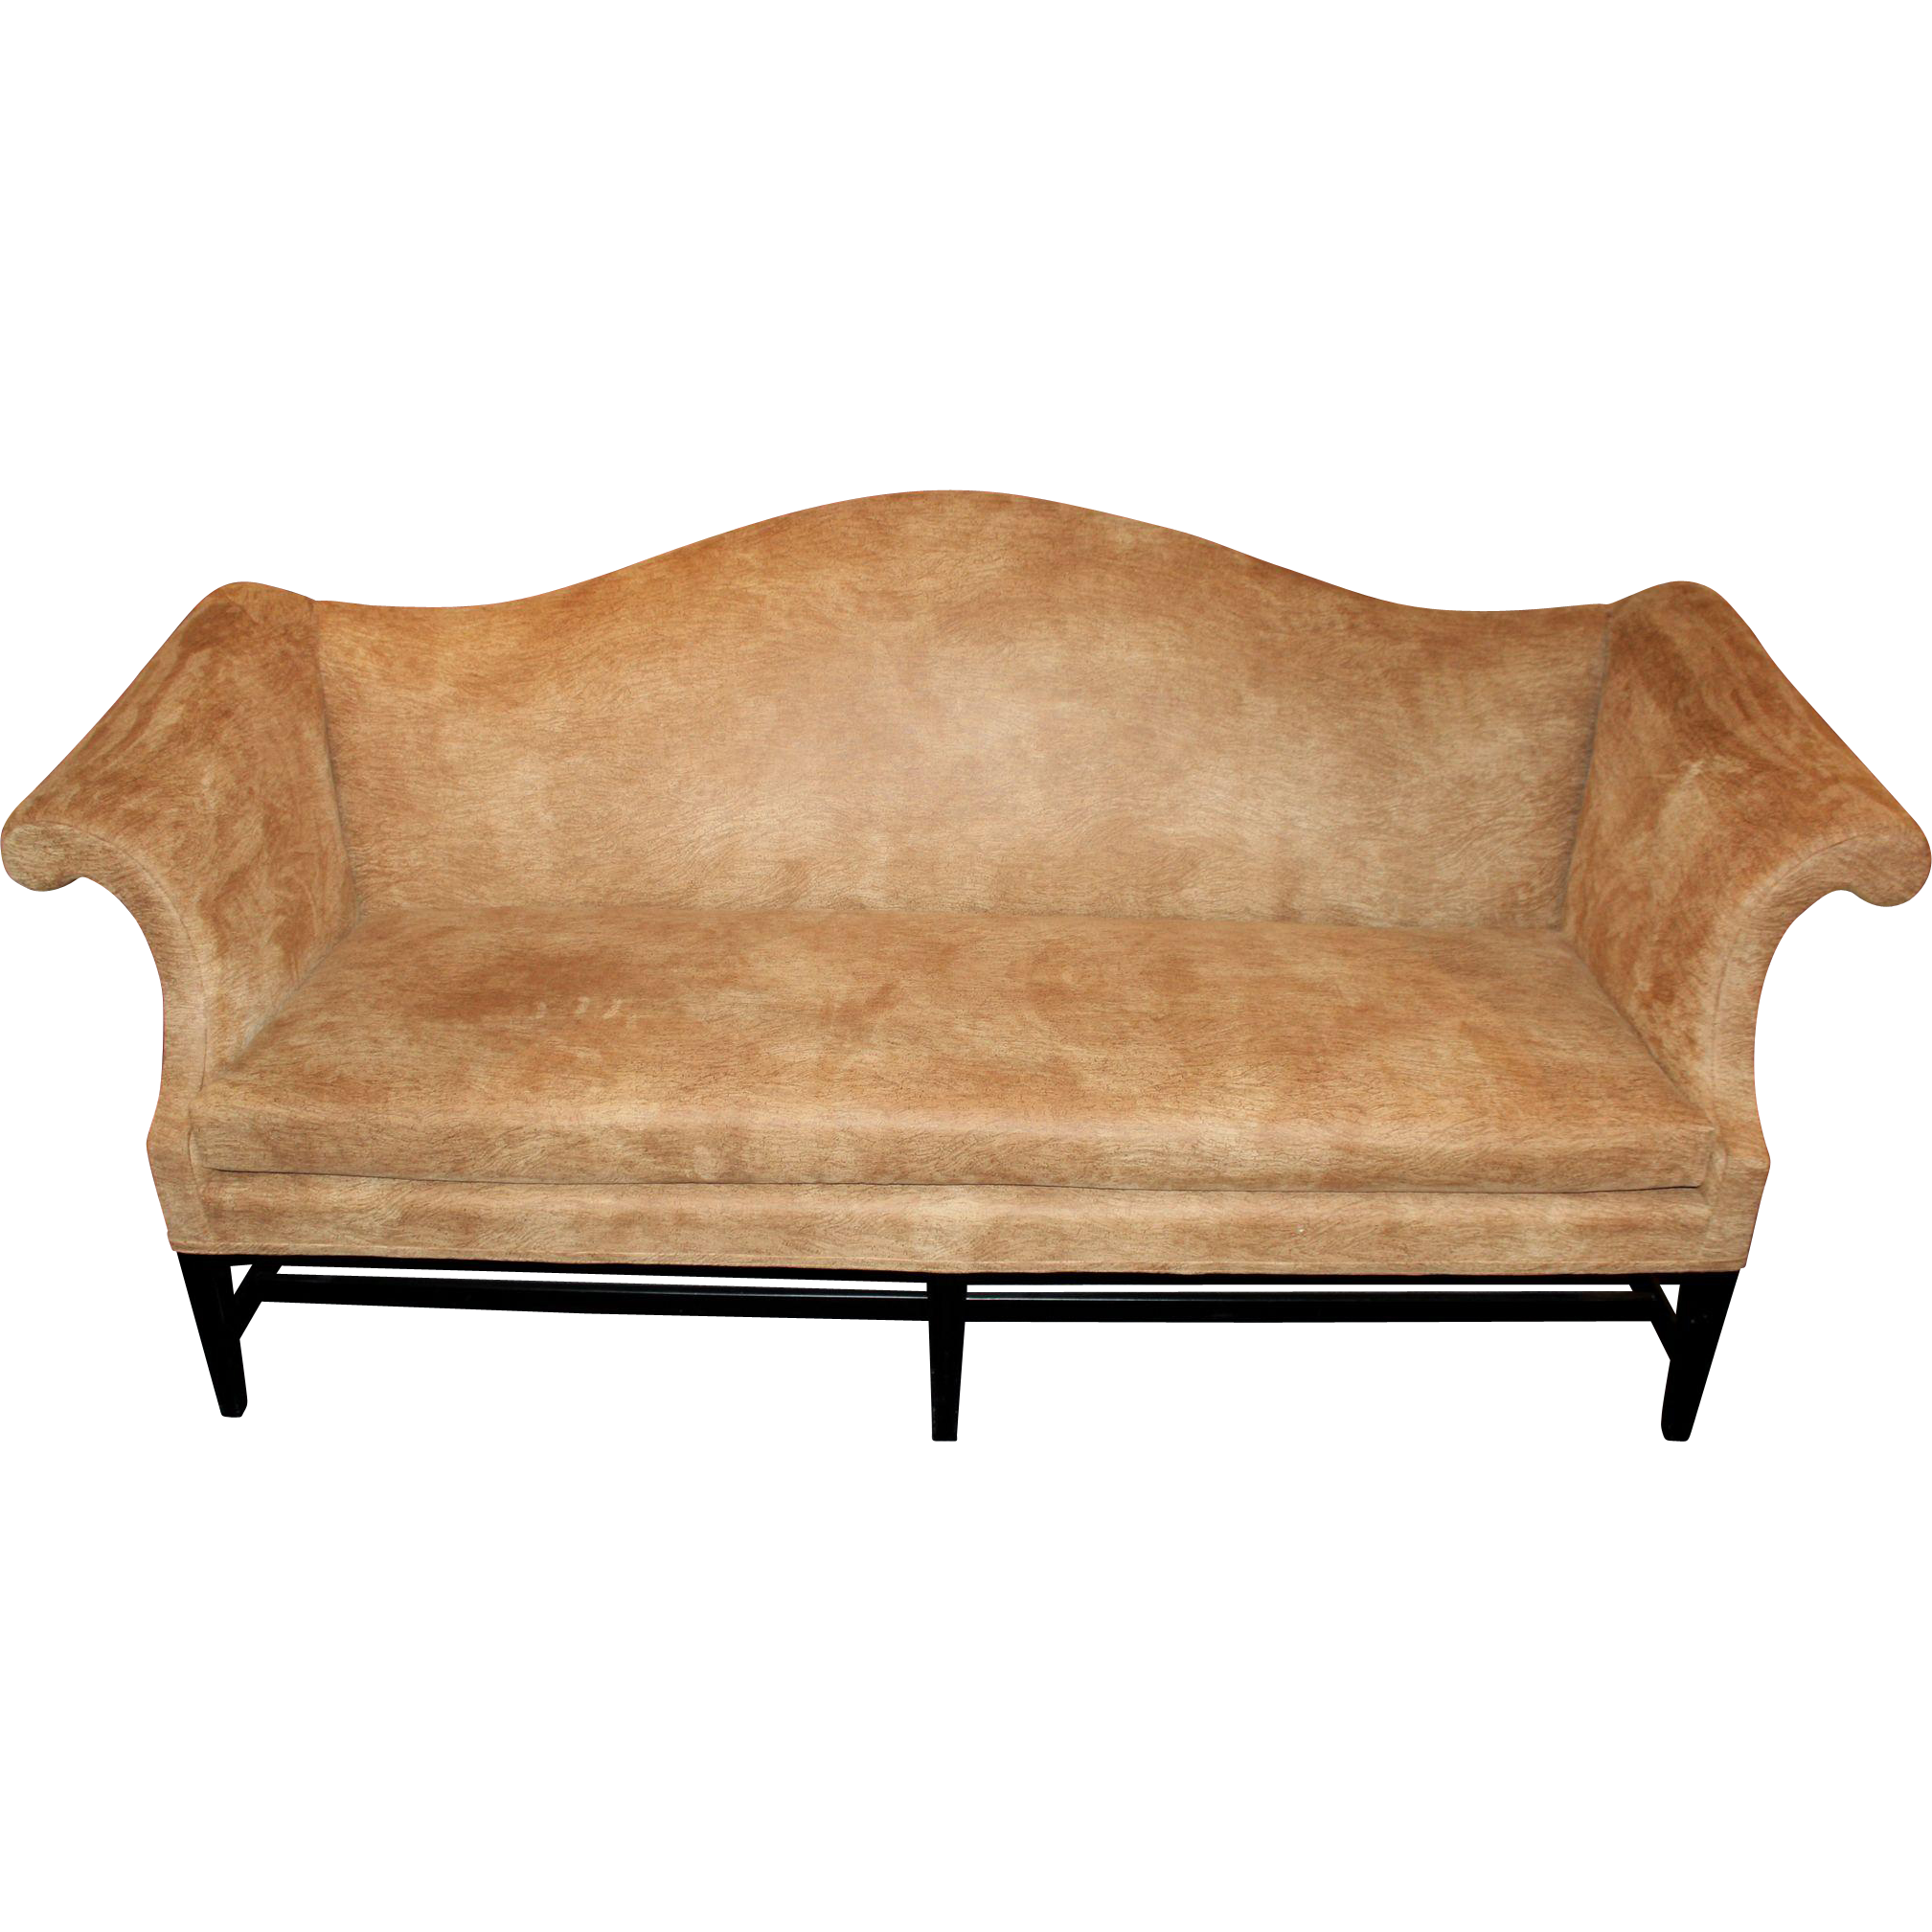 Chippendale Style Mahogany Camelback Sofa In Faux Cork Upholstery From Nhantiquecoop On Ruby Lane